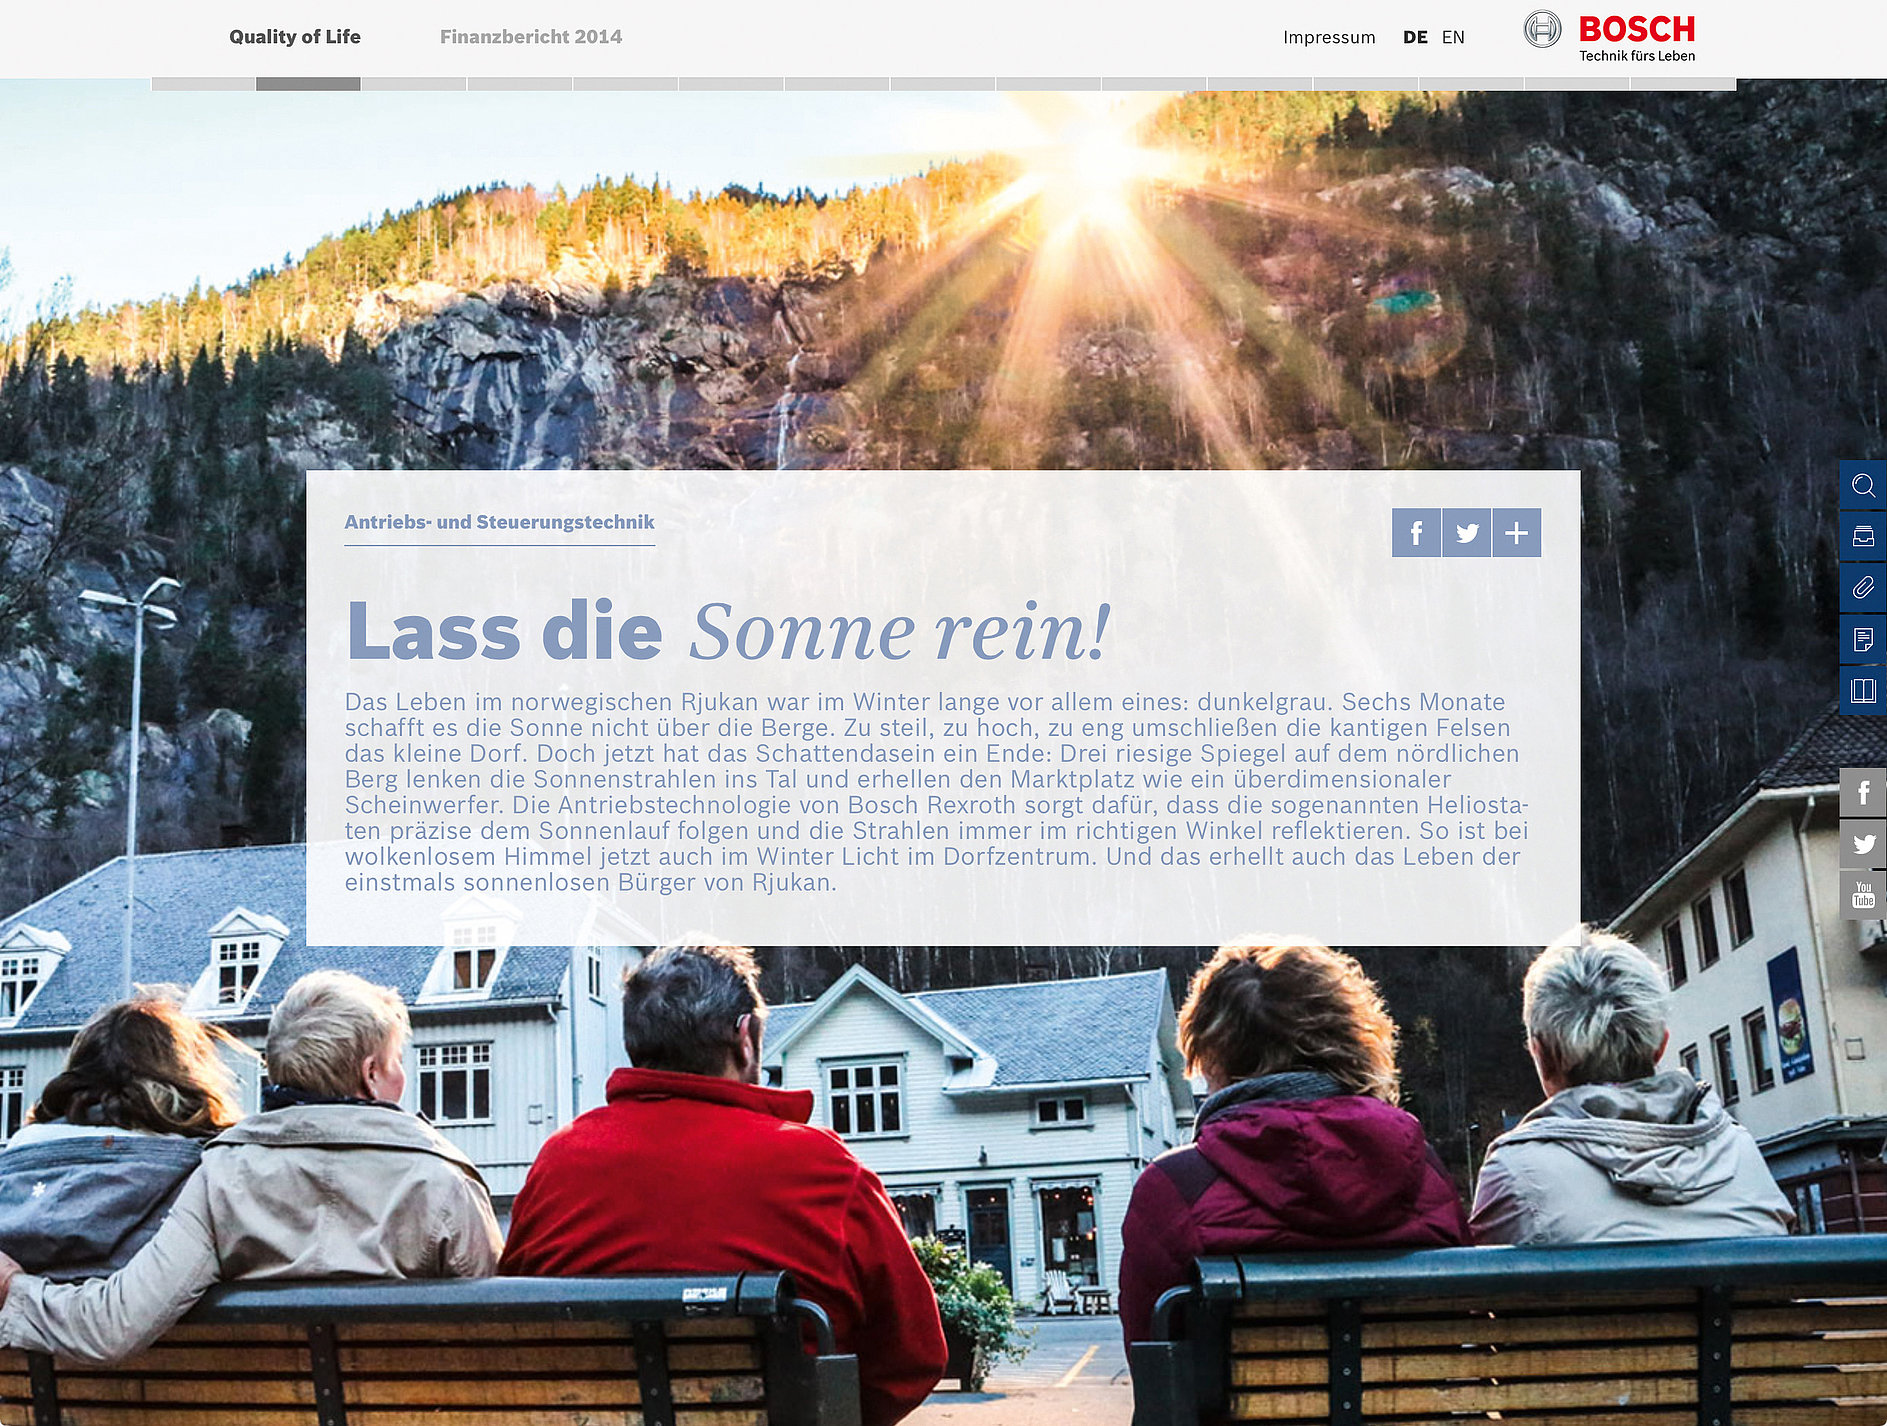 Quality of Life – Bosch Annual Report 2014 | Red Dot Design Award